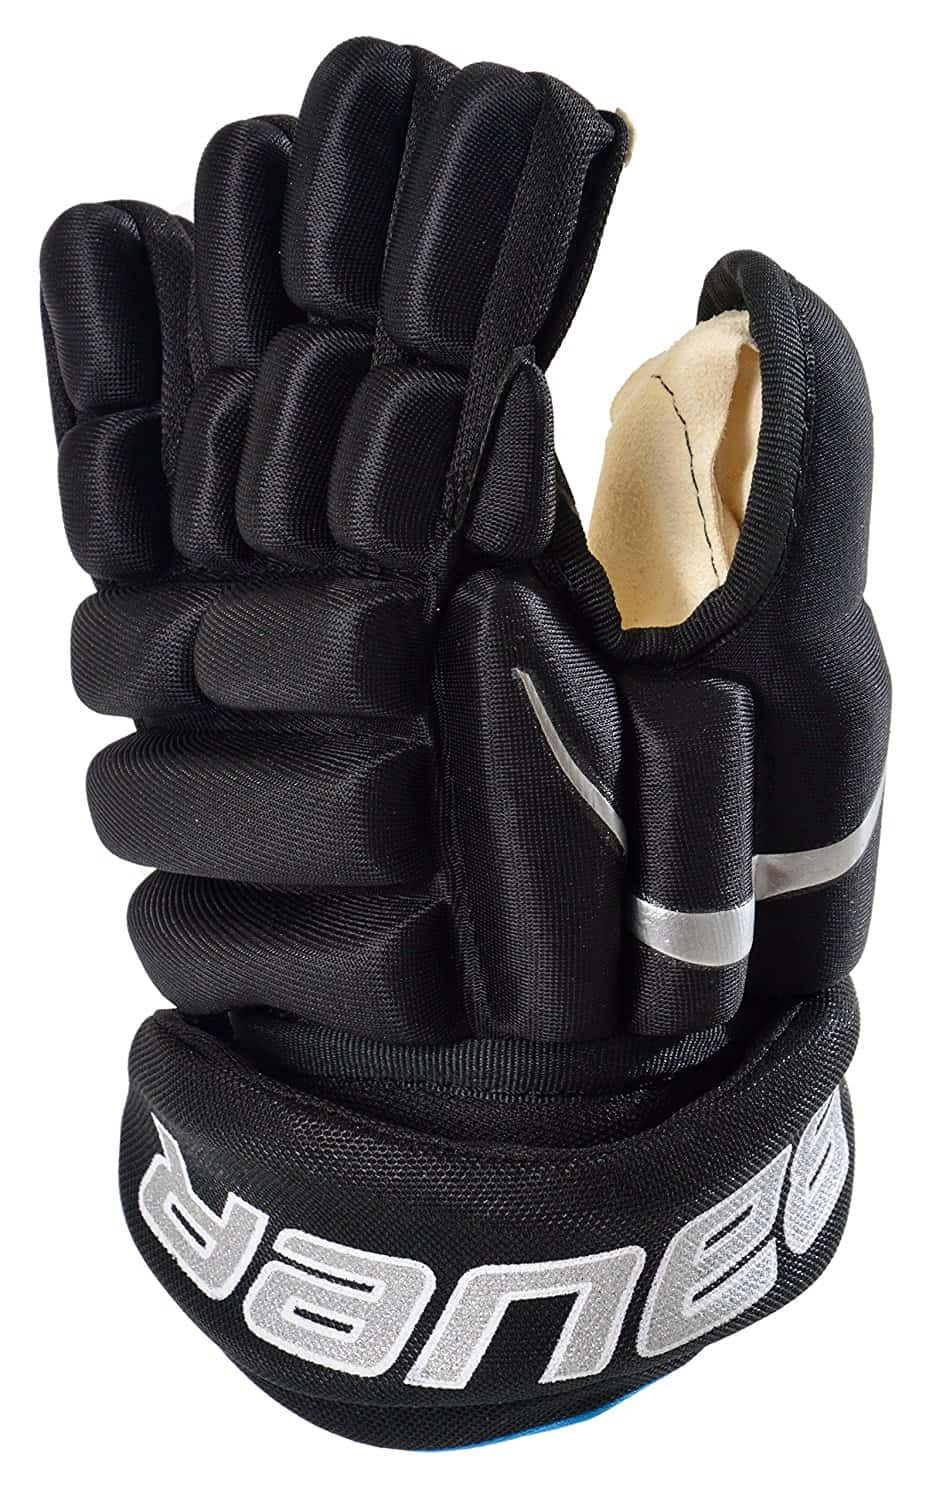 Bauer Prodigy Youth Hockey Gloves